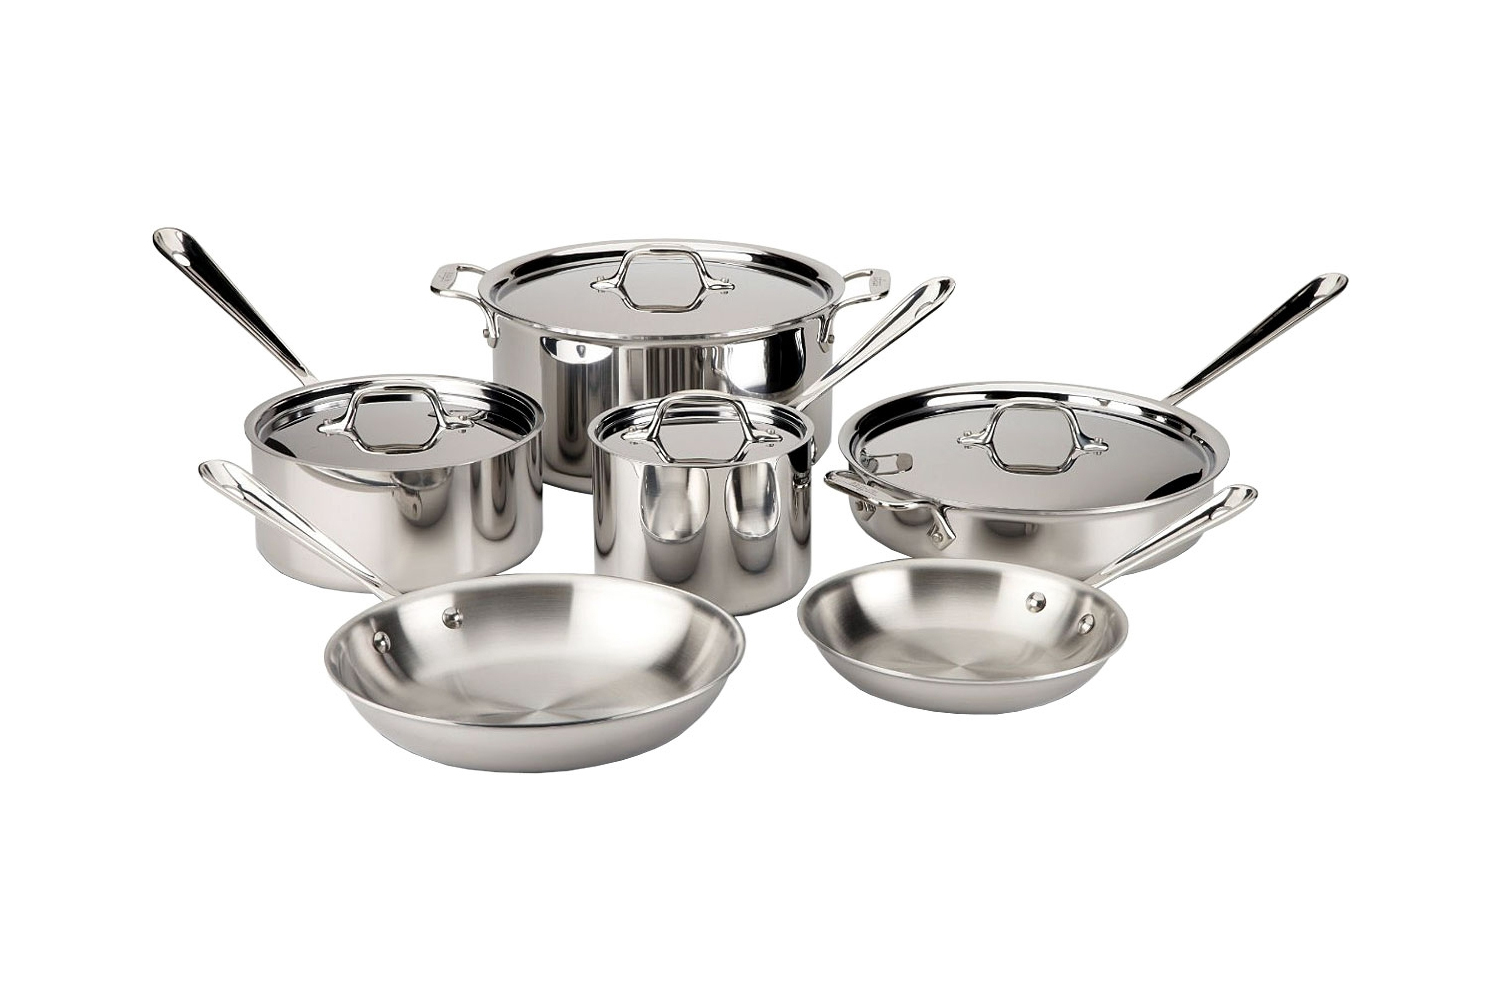 All Clad Tri Ply Stainless Steel 10pc Cookware Set 8400000962